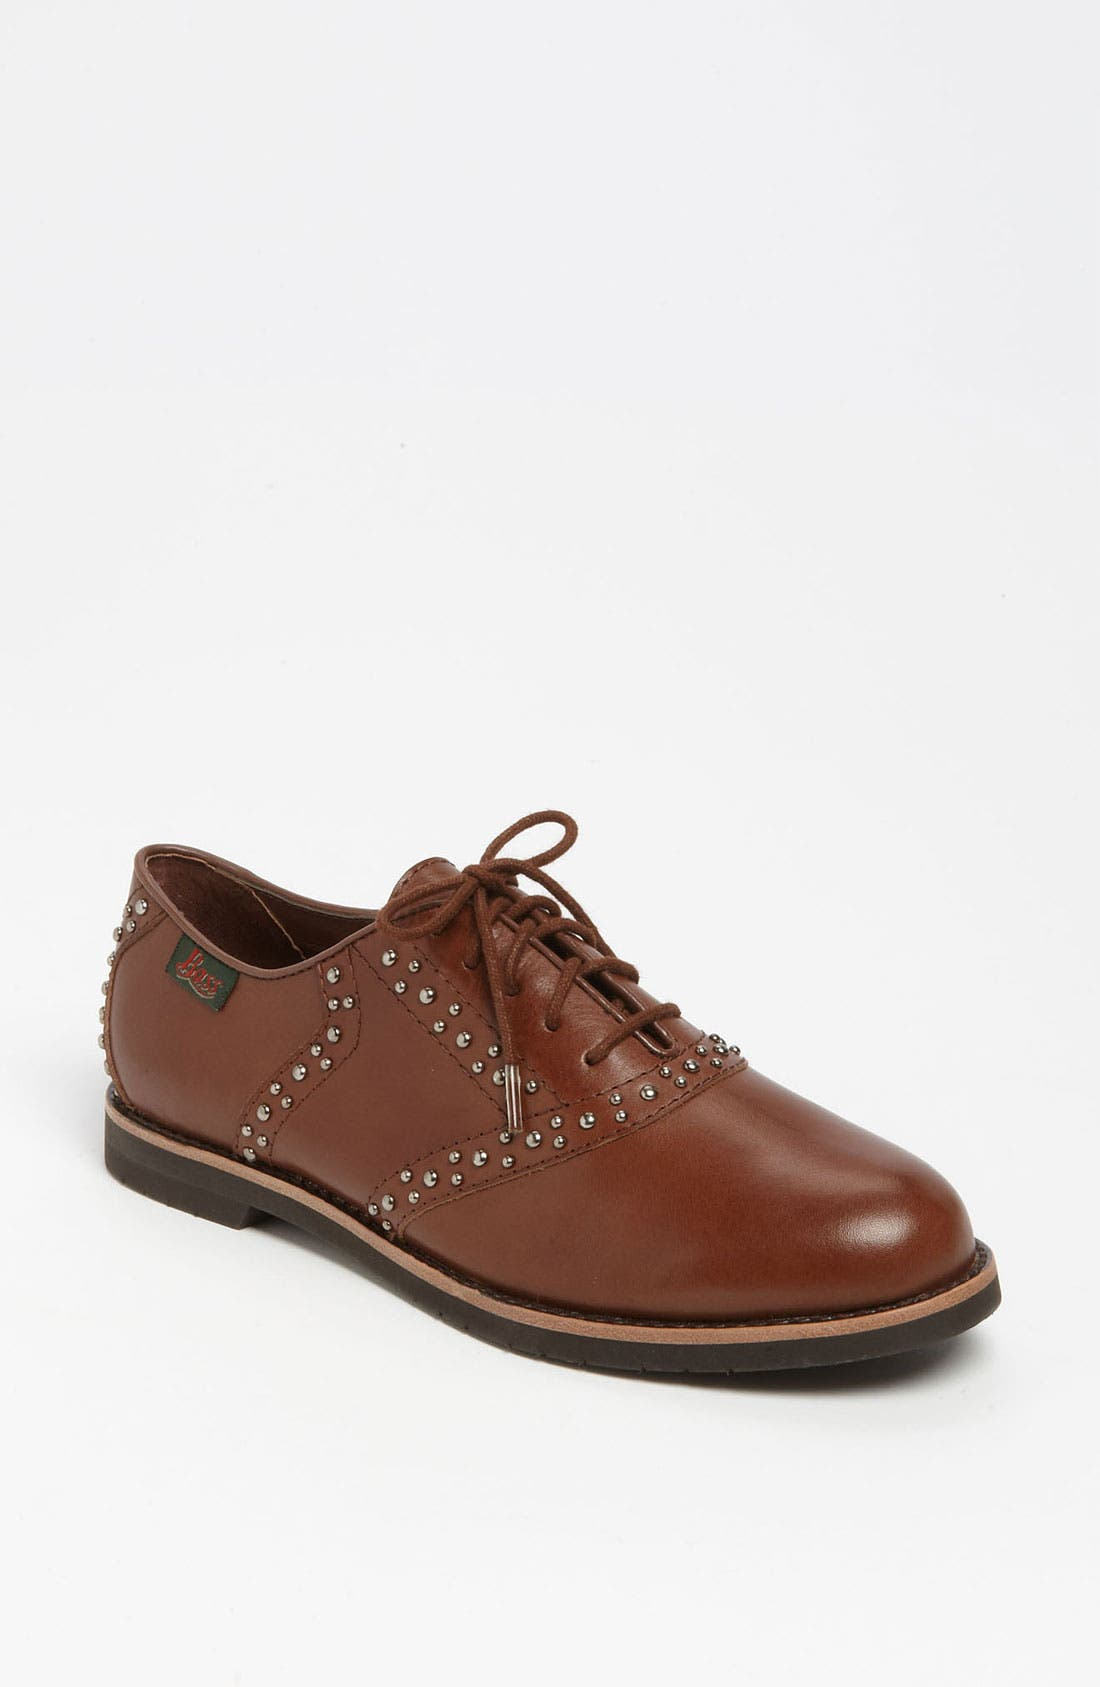 Main Image - G.H. Bass & Co. 'Enfield' Lace-Up Oxford